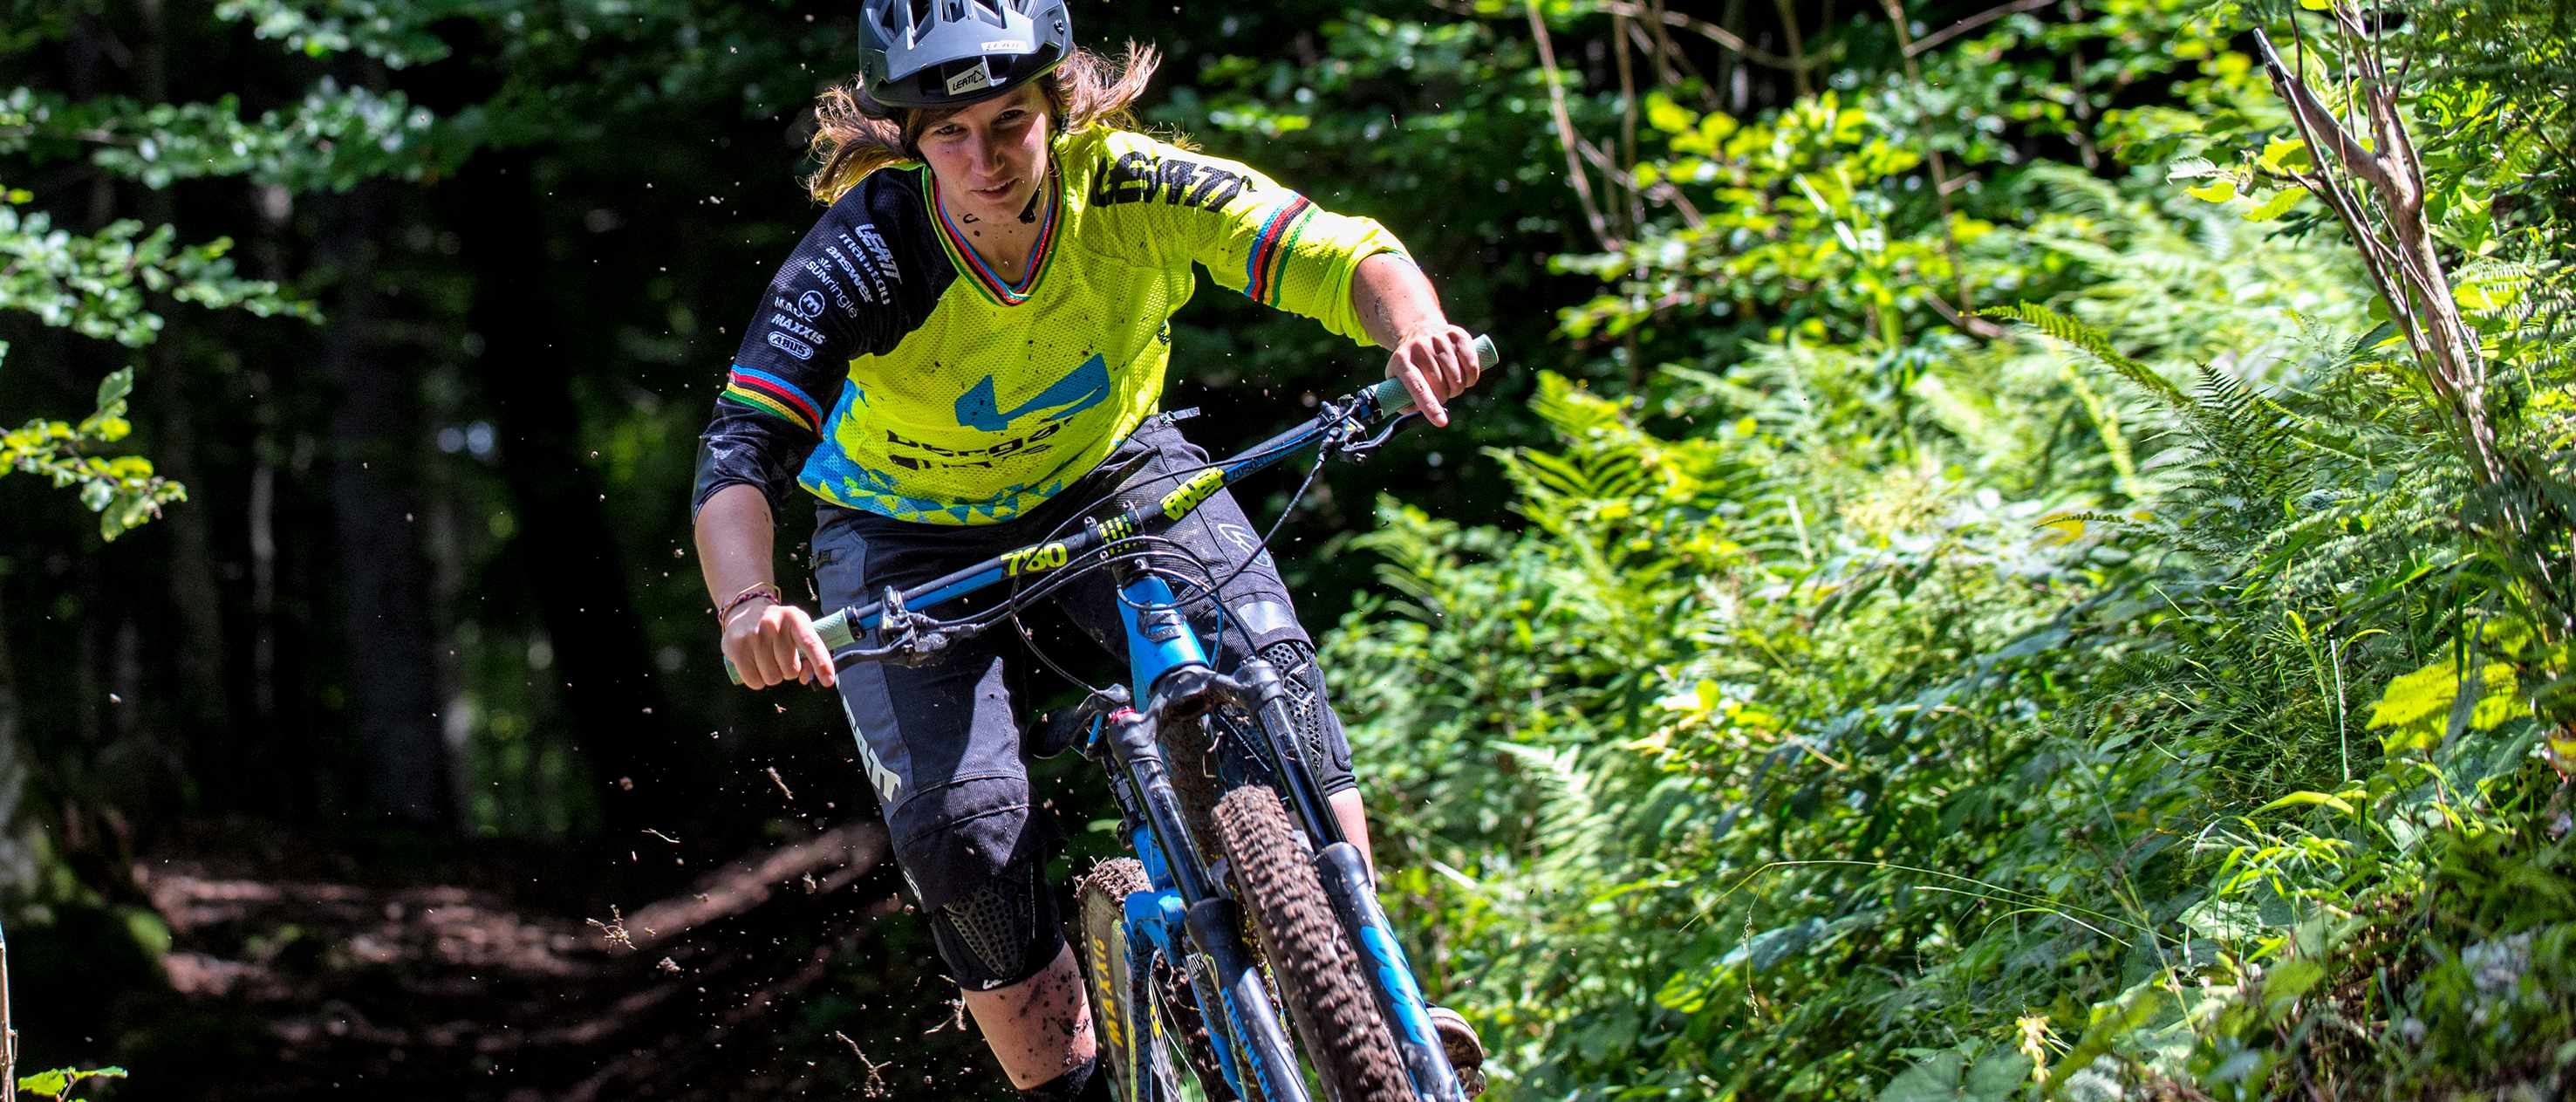 Morgane Charre pins the trails in Samoens